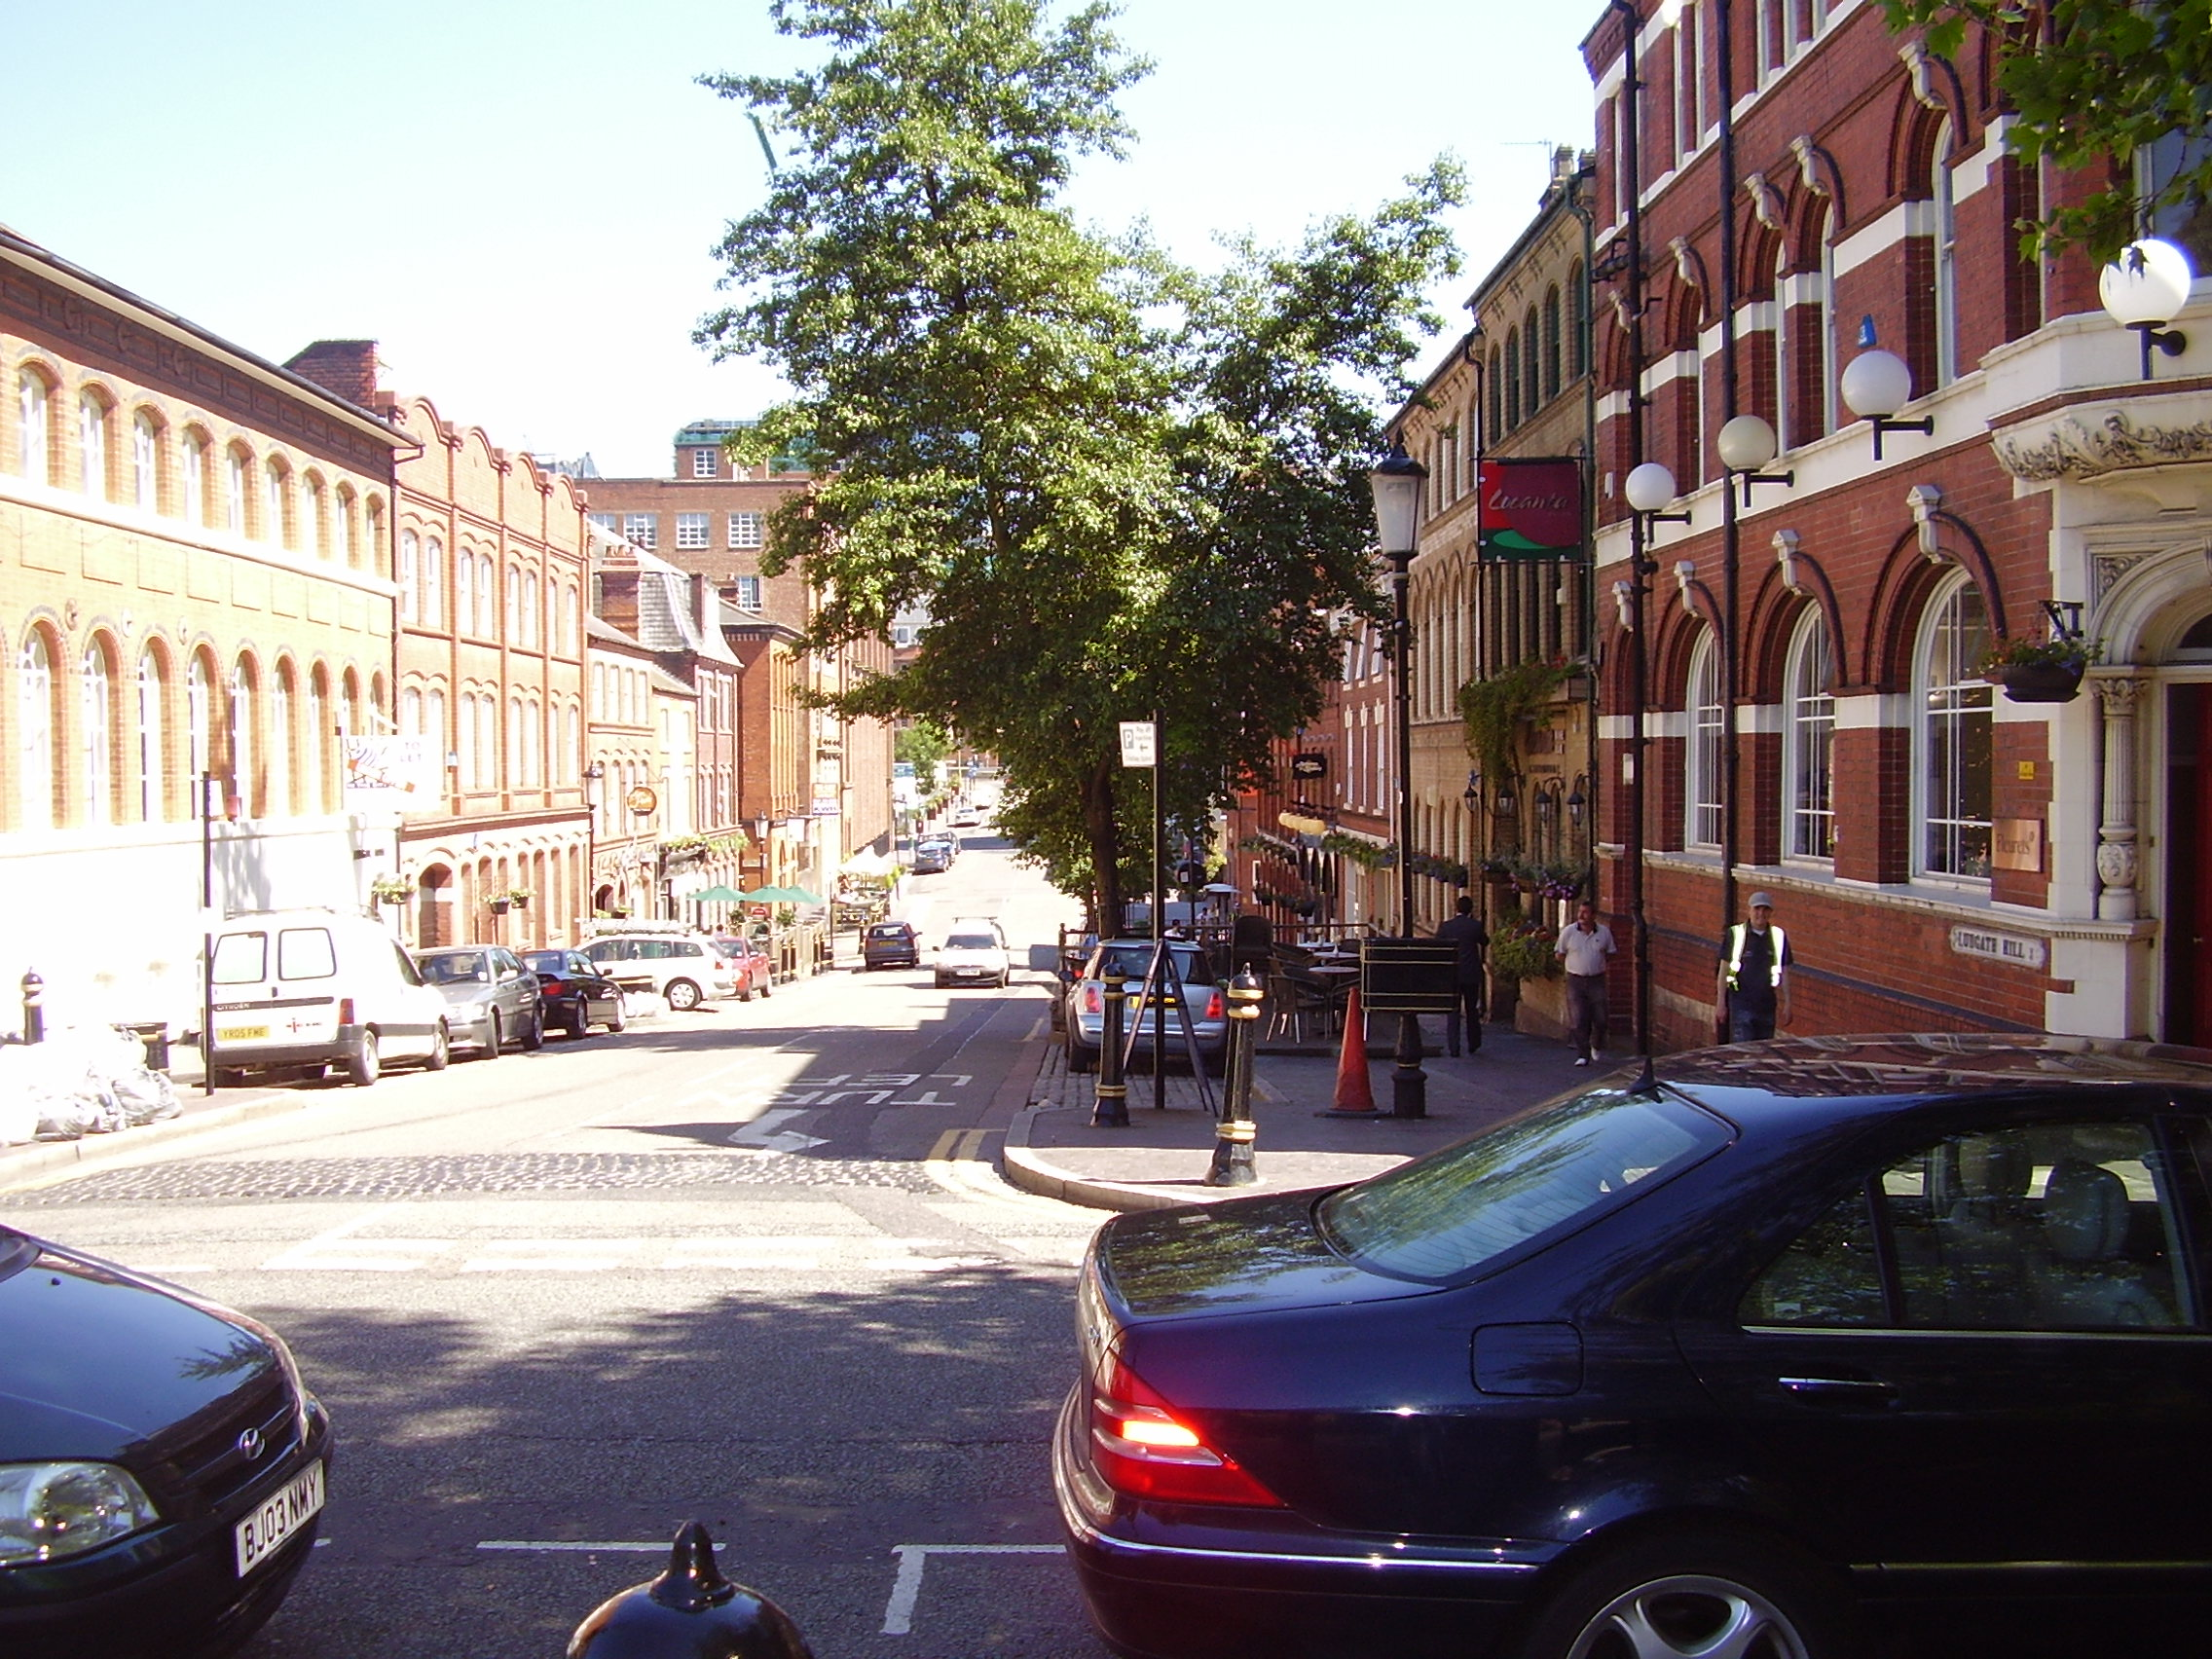 2008 Street view photo 2 of the Jewellery Quarter Birmingham